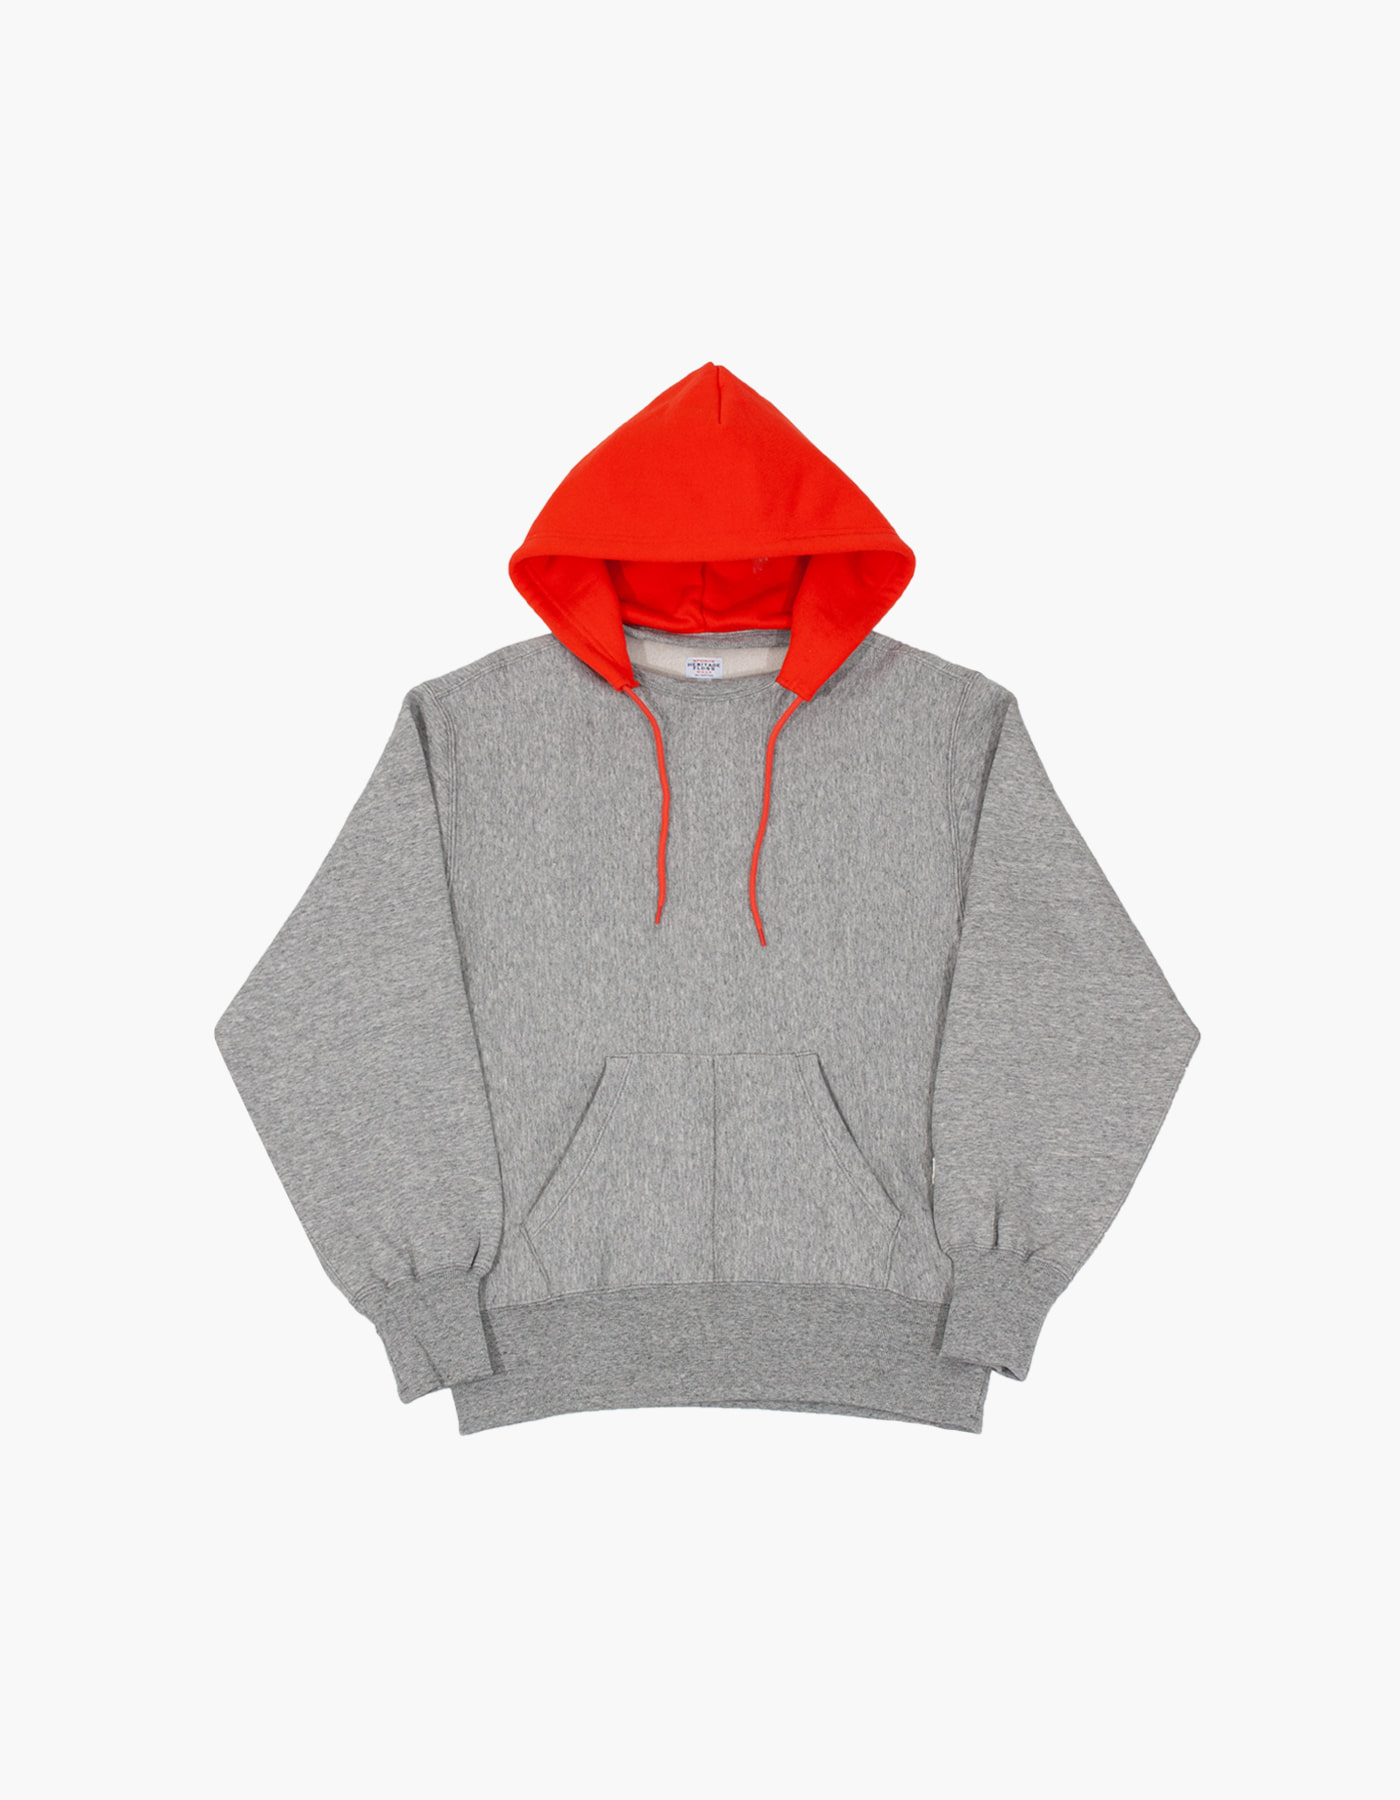 ACS BLOCKED HOODIE / M.GREY-RED